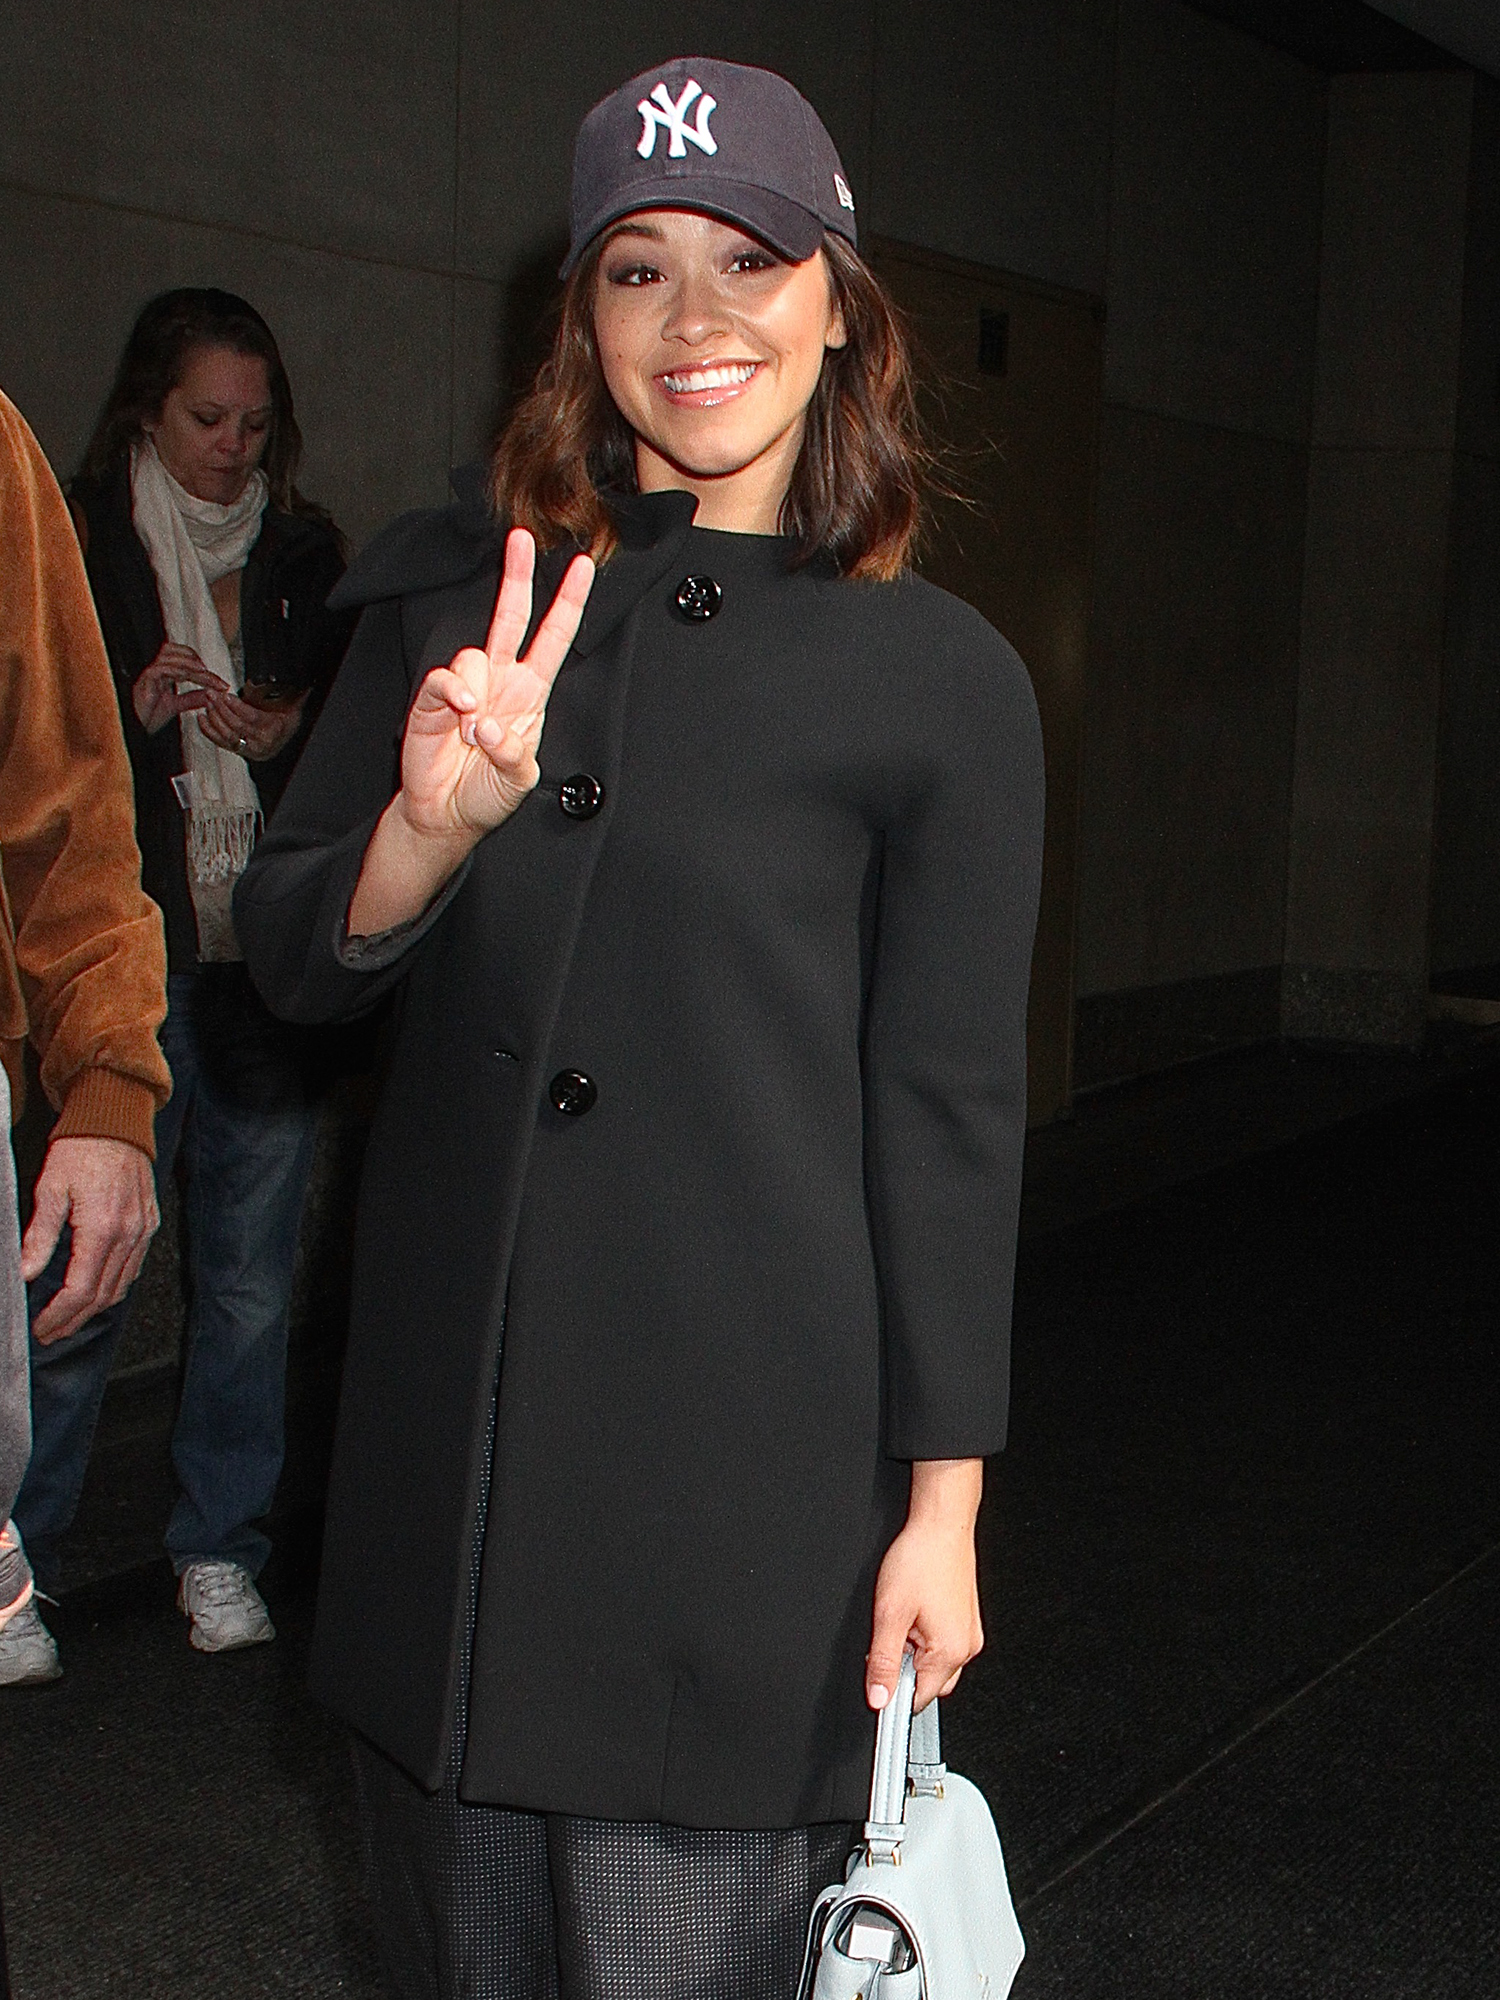 Gina Rodriguez at the 'Today' show in NYC